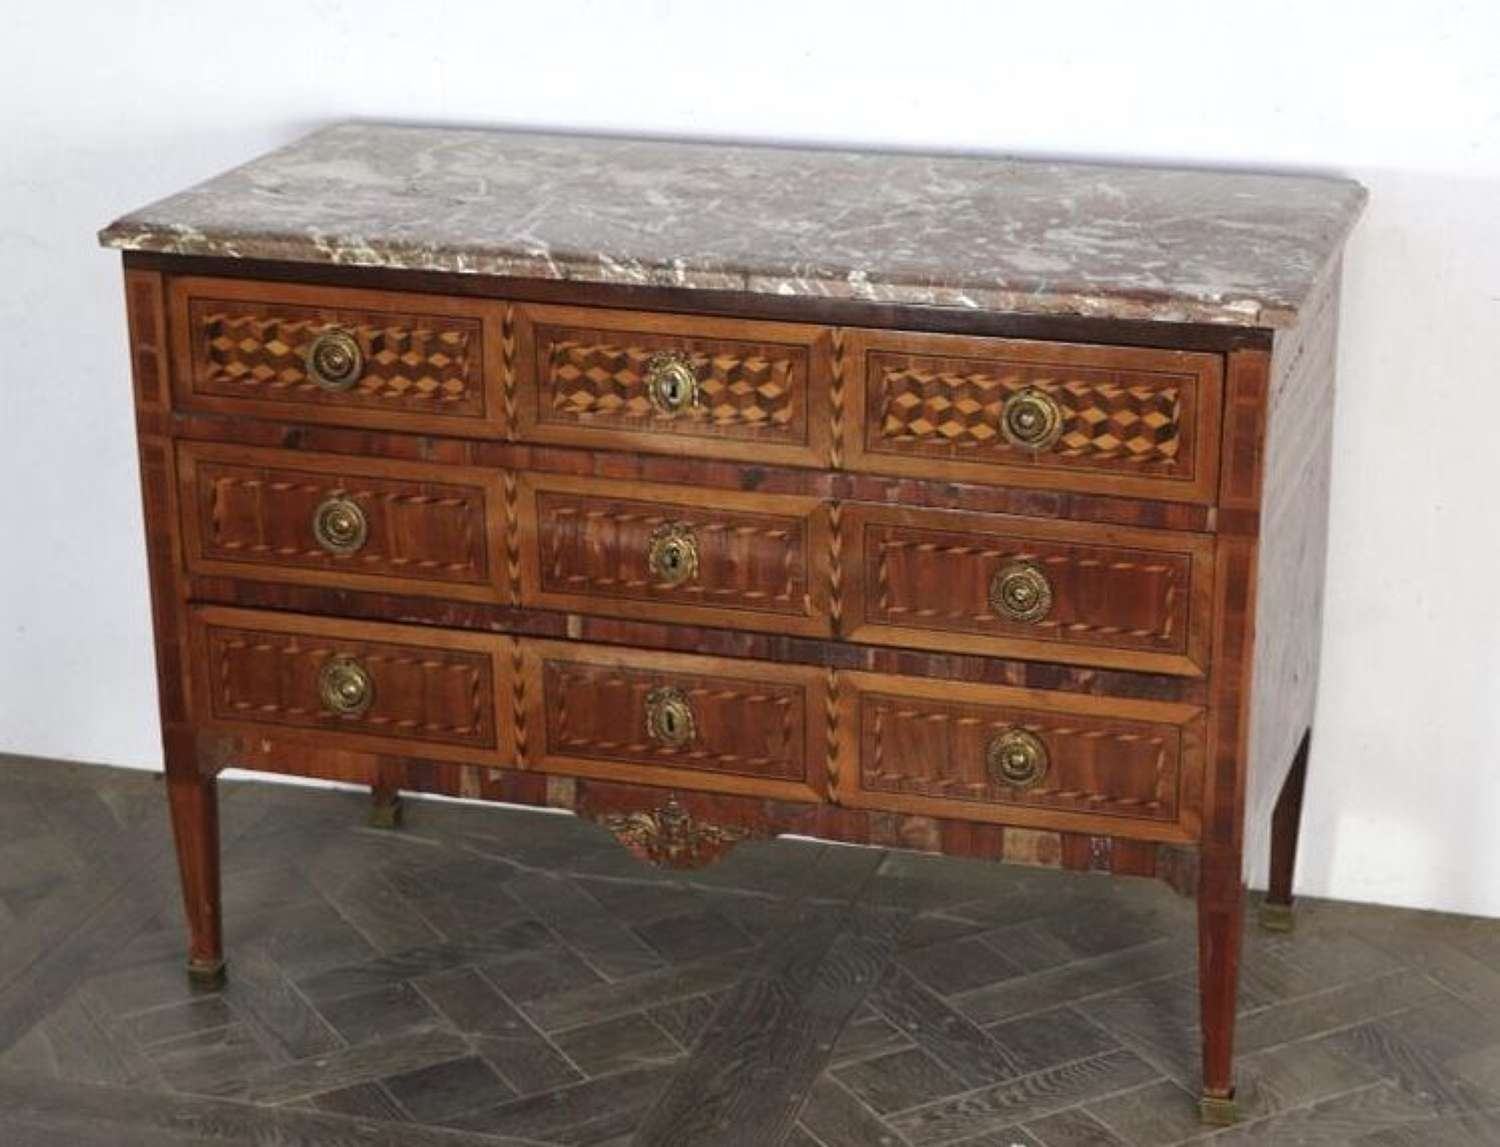 A LOUIS XVI PERIOD PARQUETRY COMMODE FRANCE